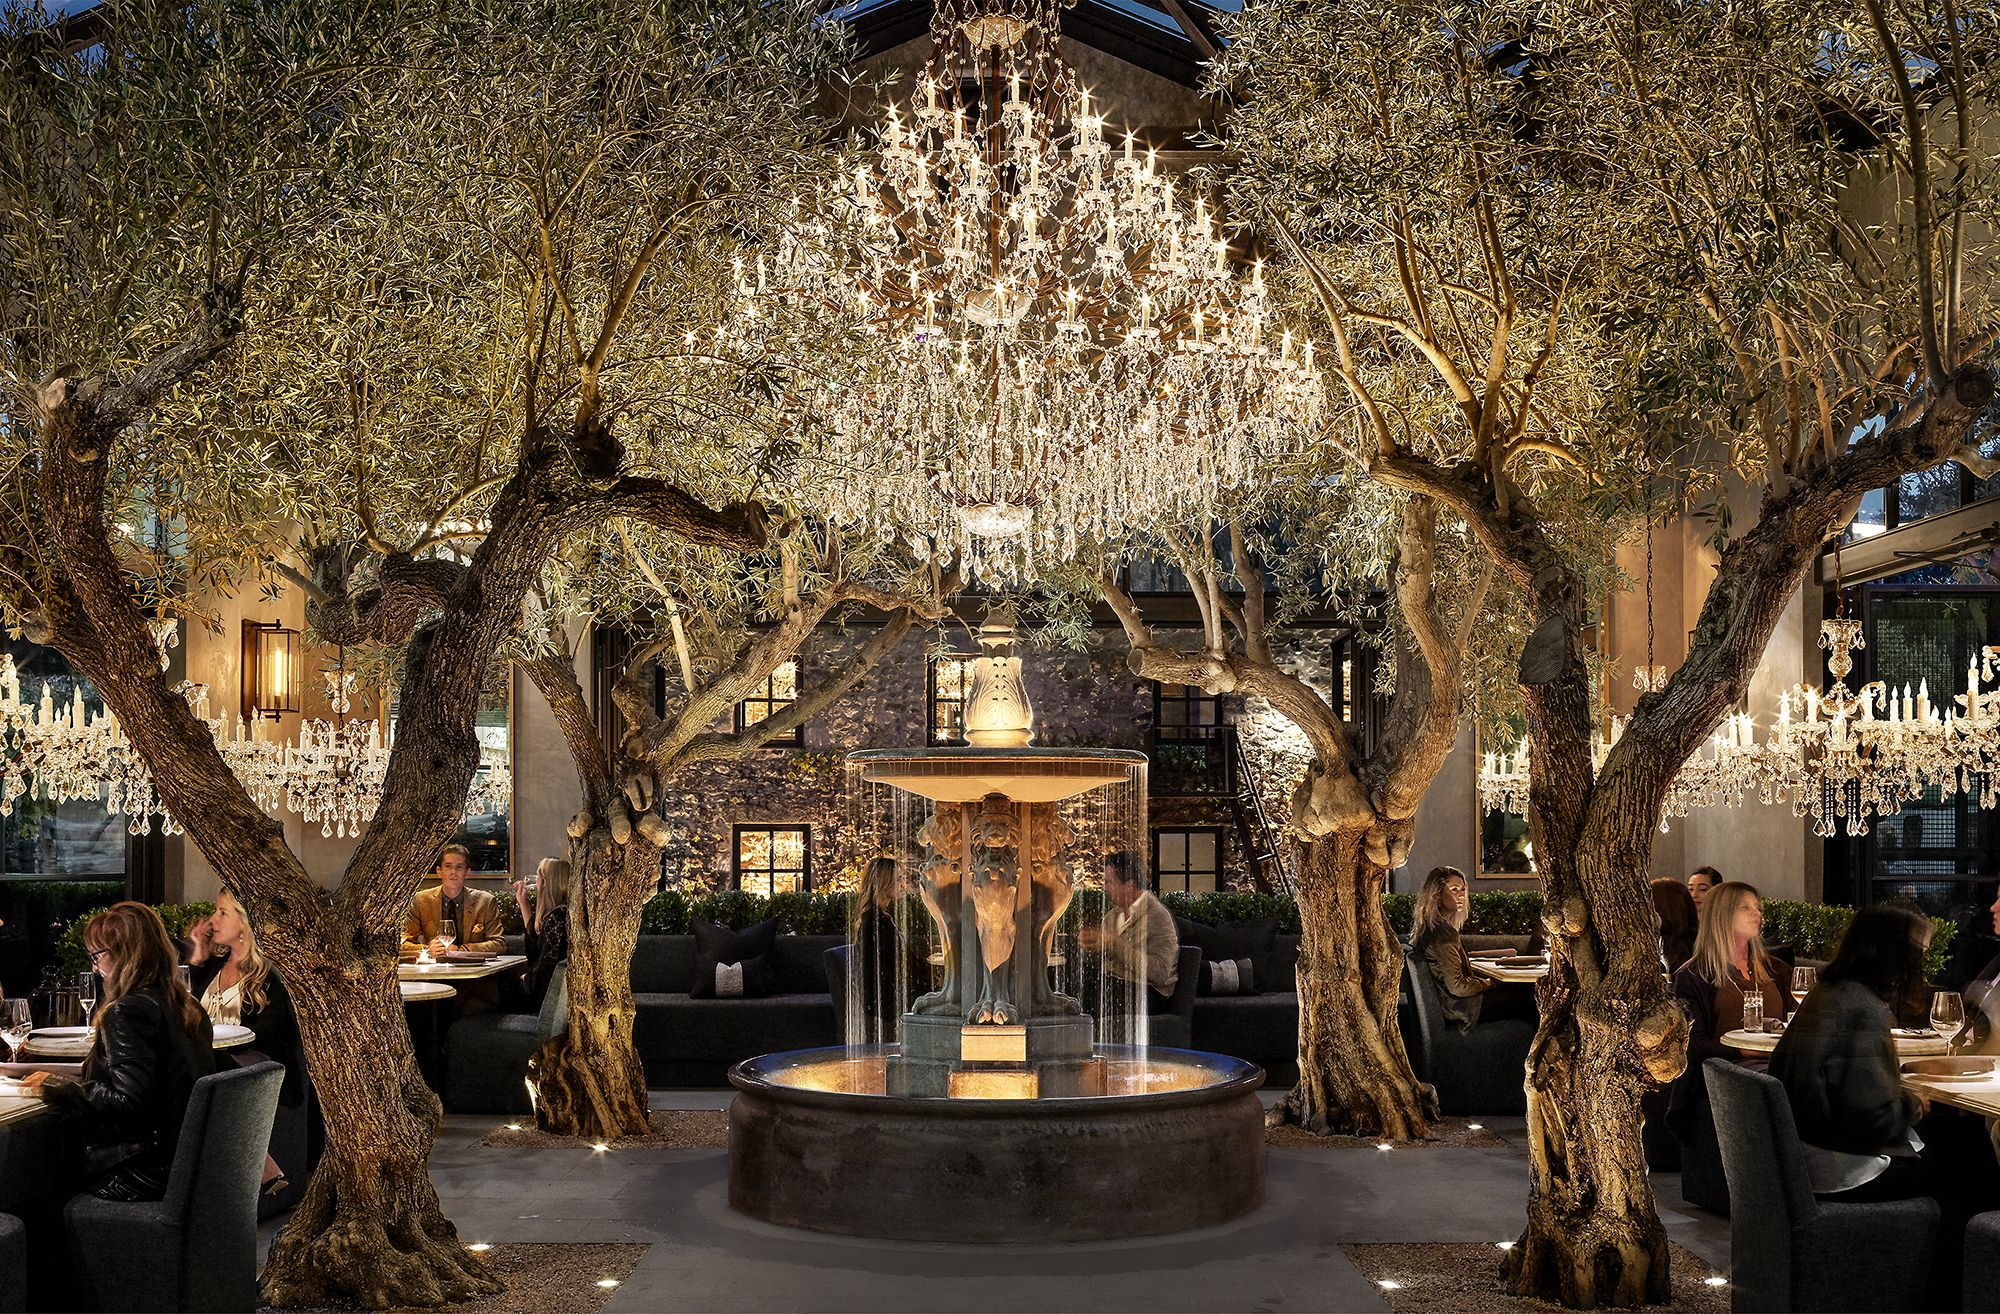 RH garden courtyard lit up at night, with a large fountain, olive trees and chandeliers.